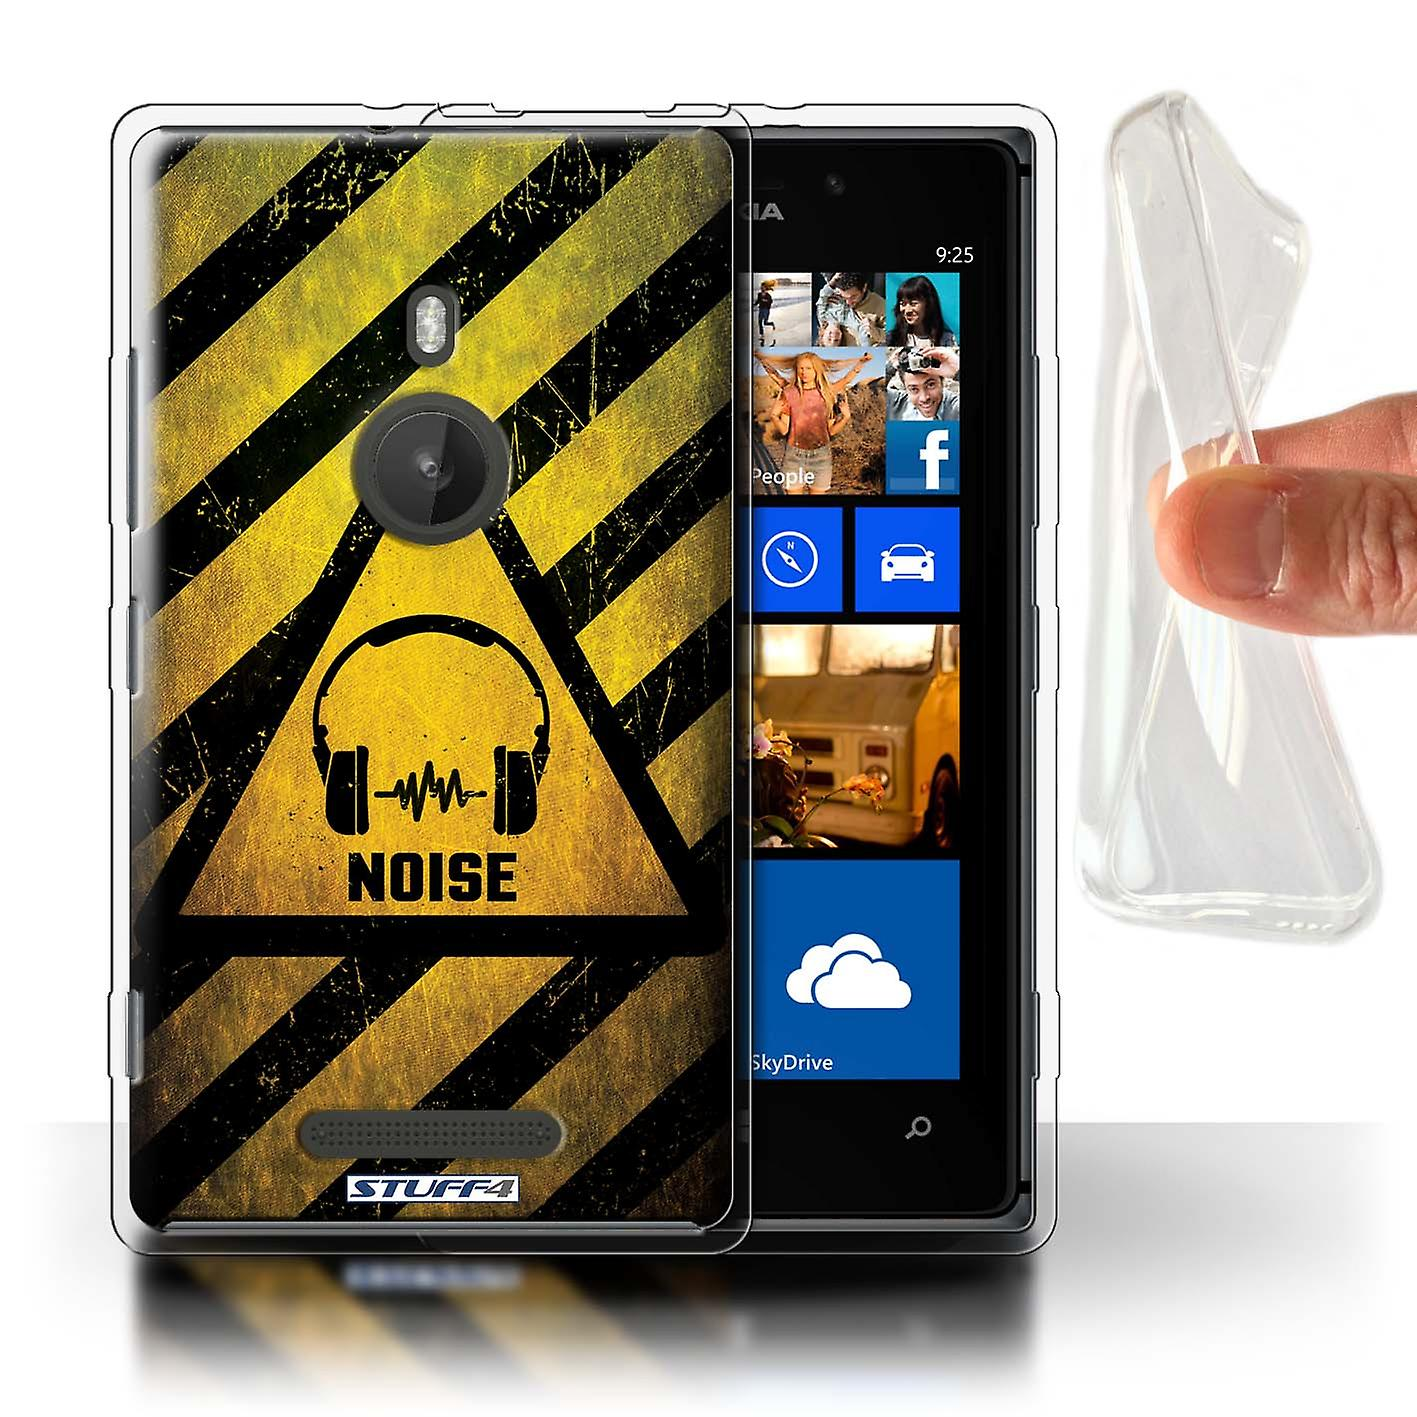 STUFF4 Gel TPU Case/Cover for Nokia Lumia 925/Noise/Music/Hazard Warning Signs